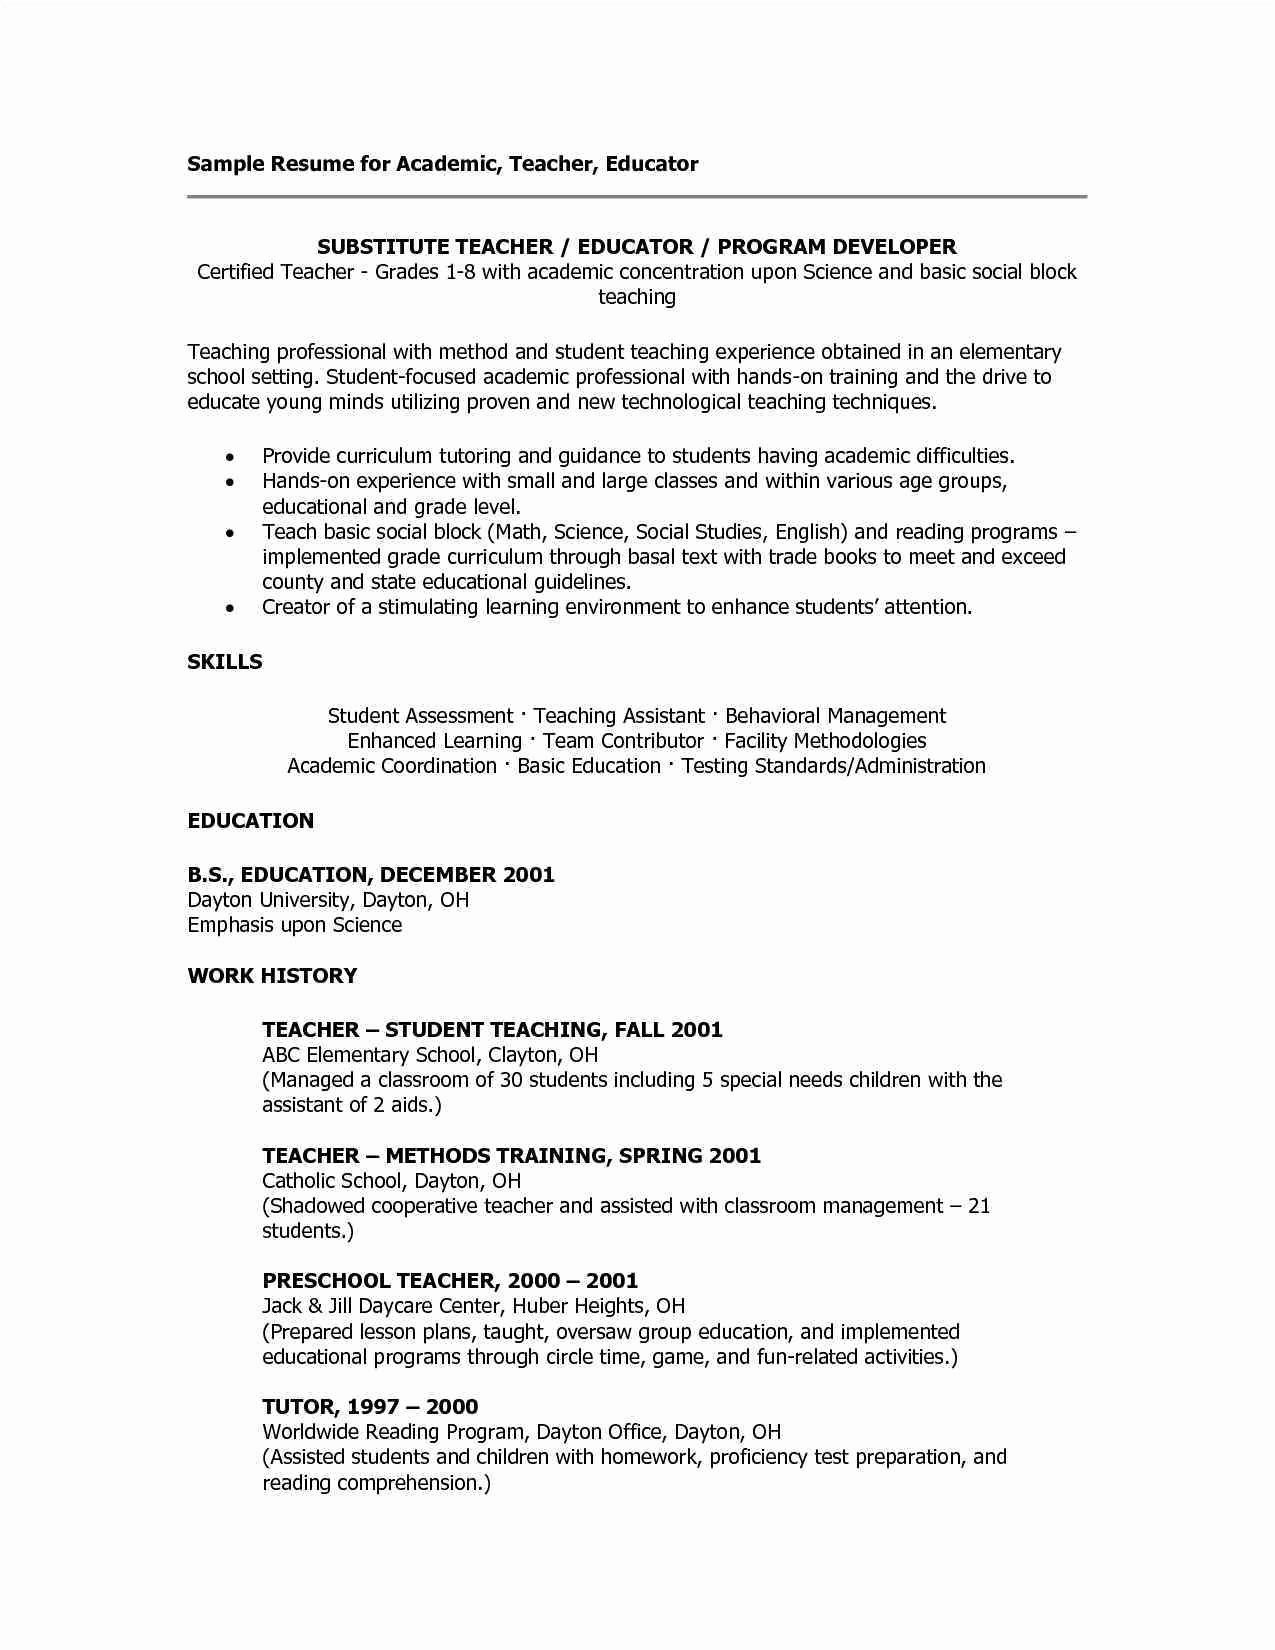 Resume In Usa format Inspirational Great Sample Resume